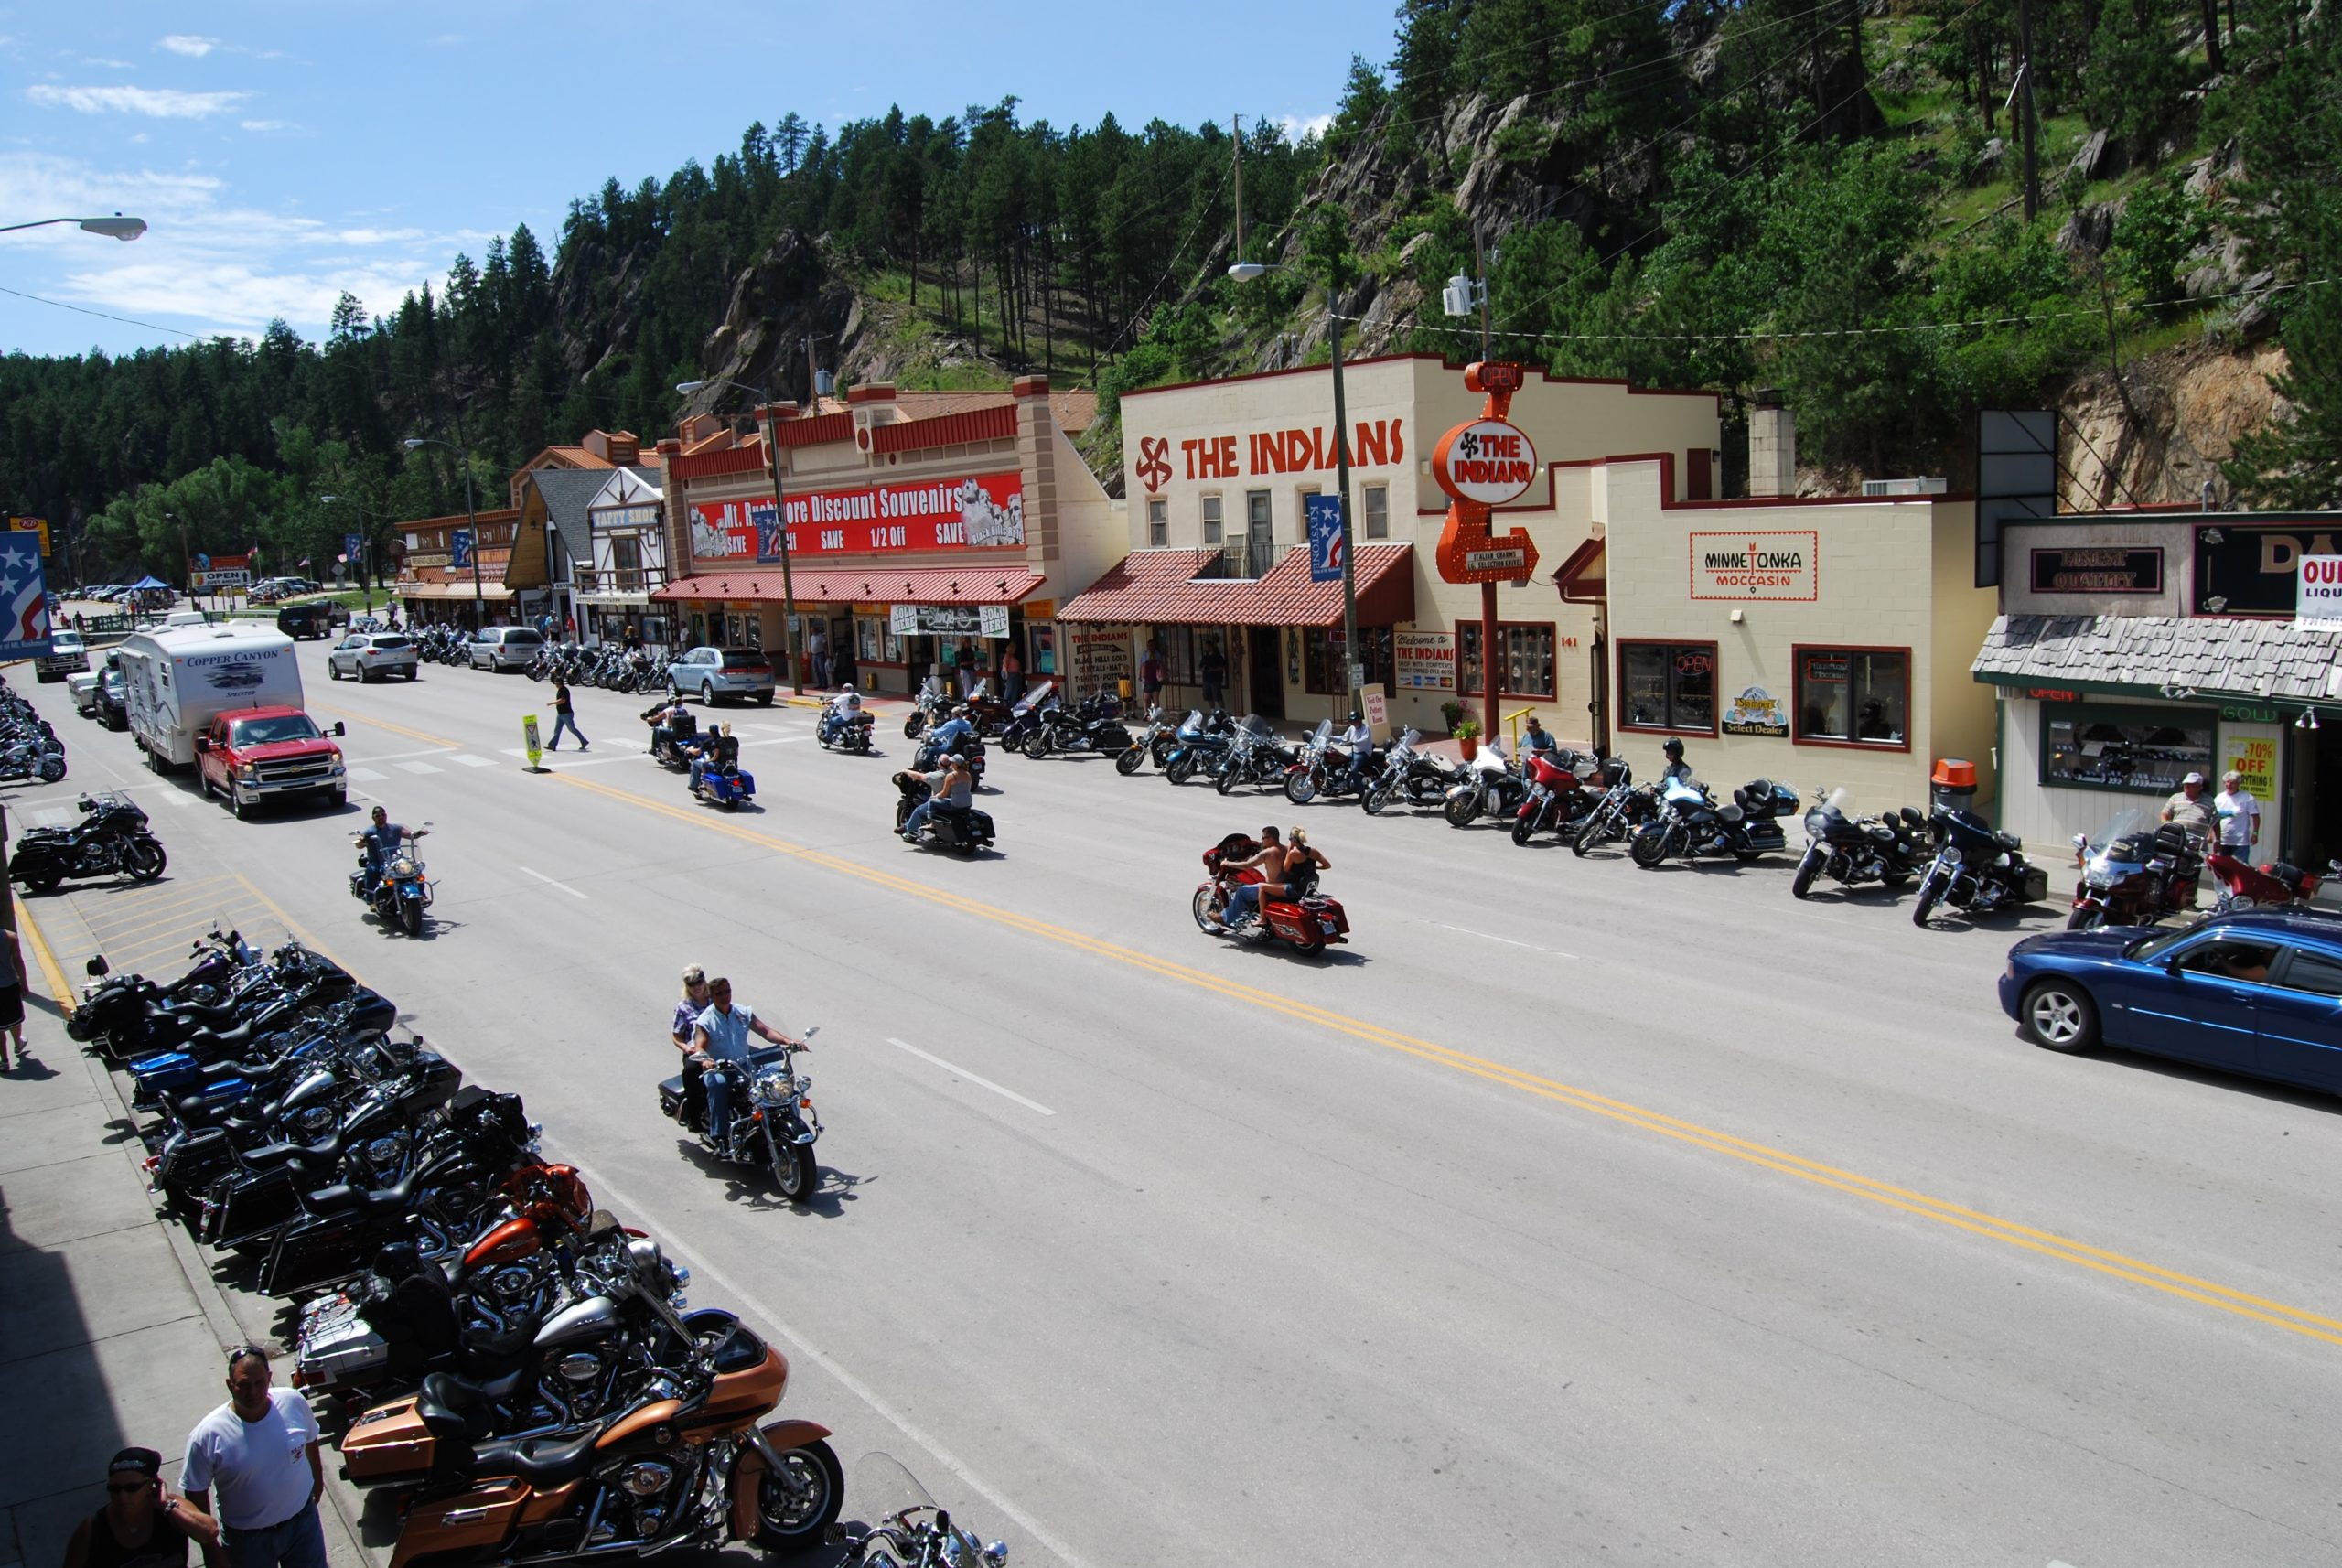 Located in the center of the Black Hills, Keystone is a family friendly, year-round destination..but during the Sturgis Motorcycle Rally, it is also a favorite stop for motorcyclists.